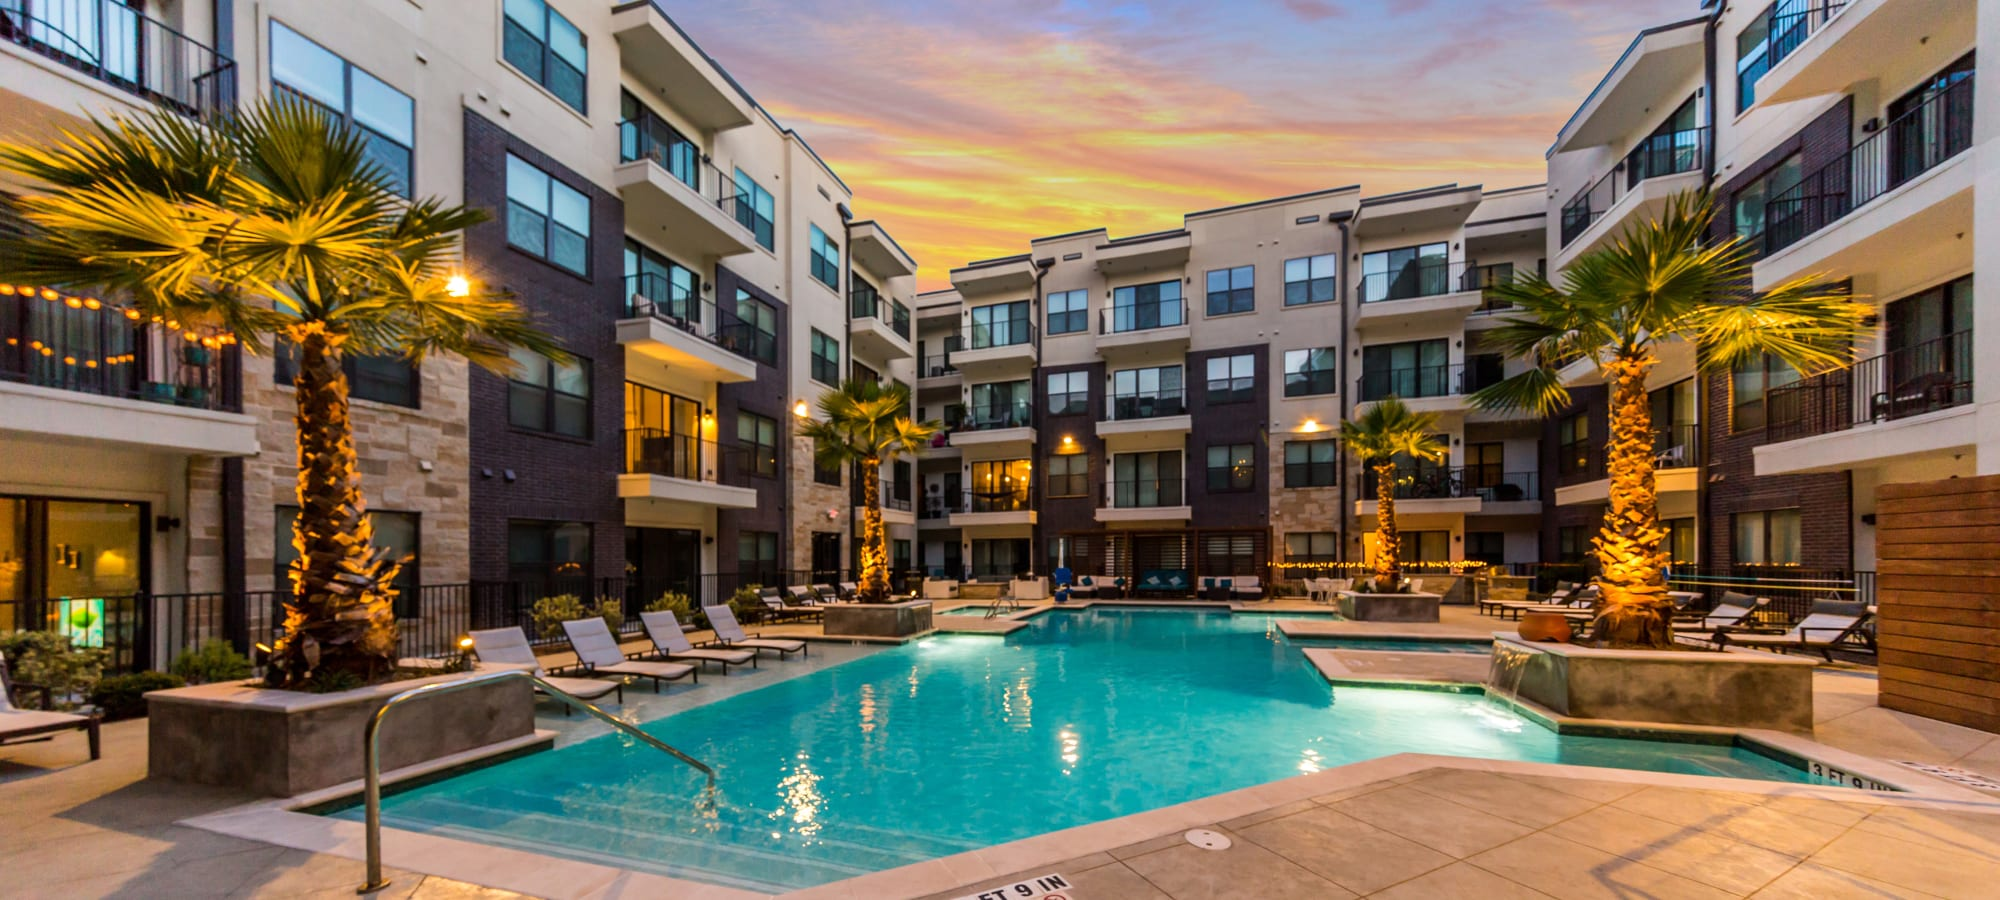 Apartments at Marq 31 in Houston, Texas